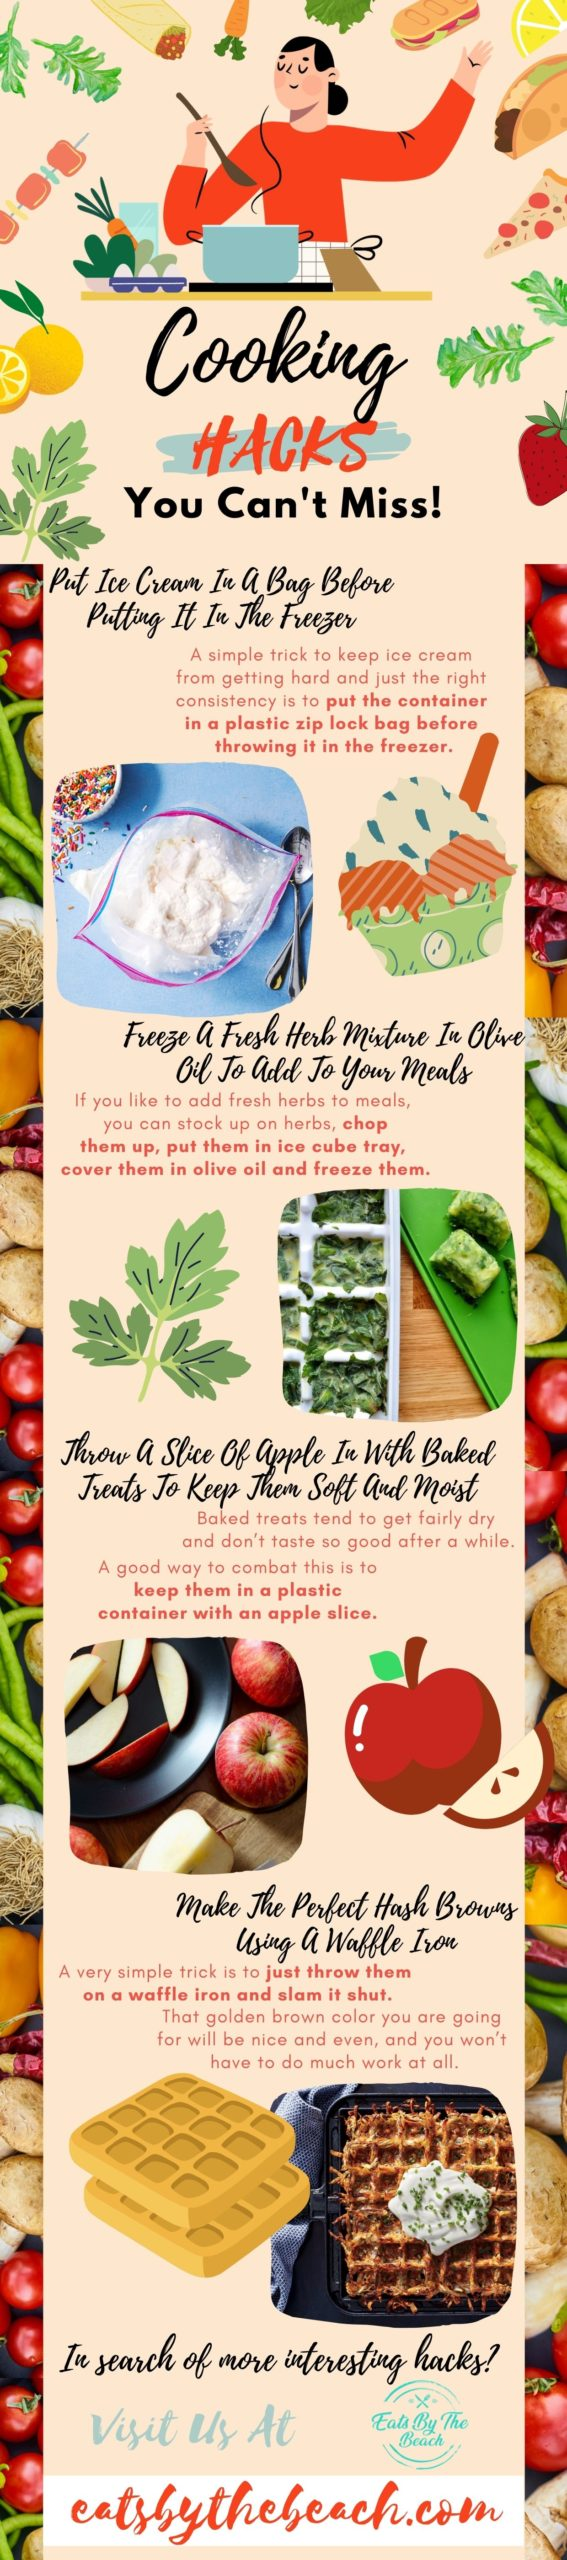 Cooking hacks you can't miss